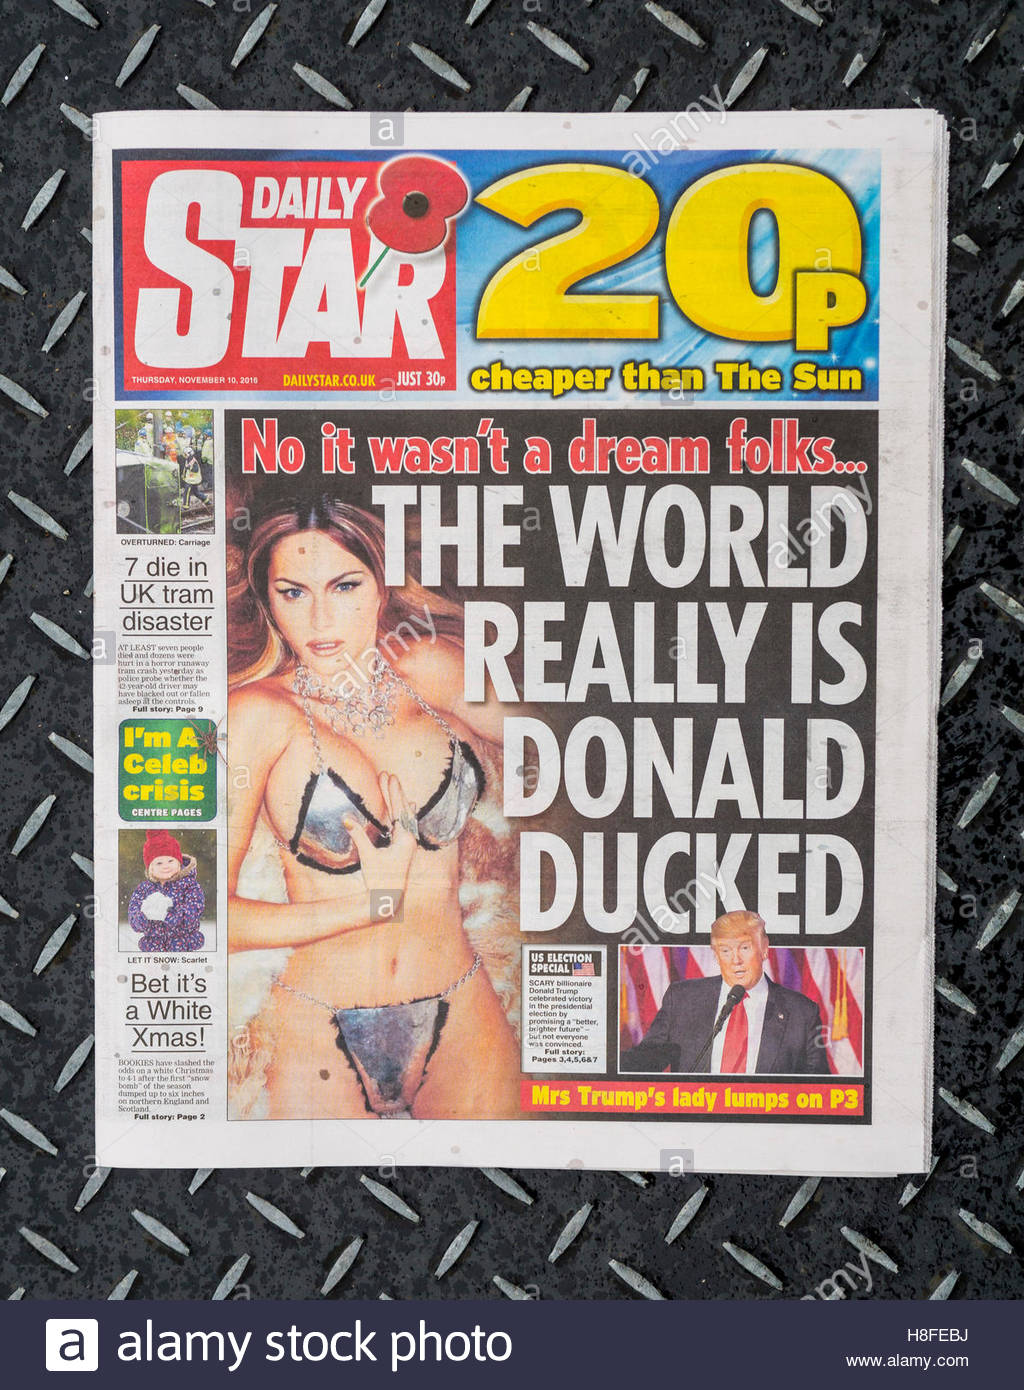 Daily Star newspaper front page - Stock Image